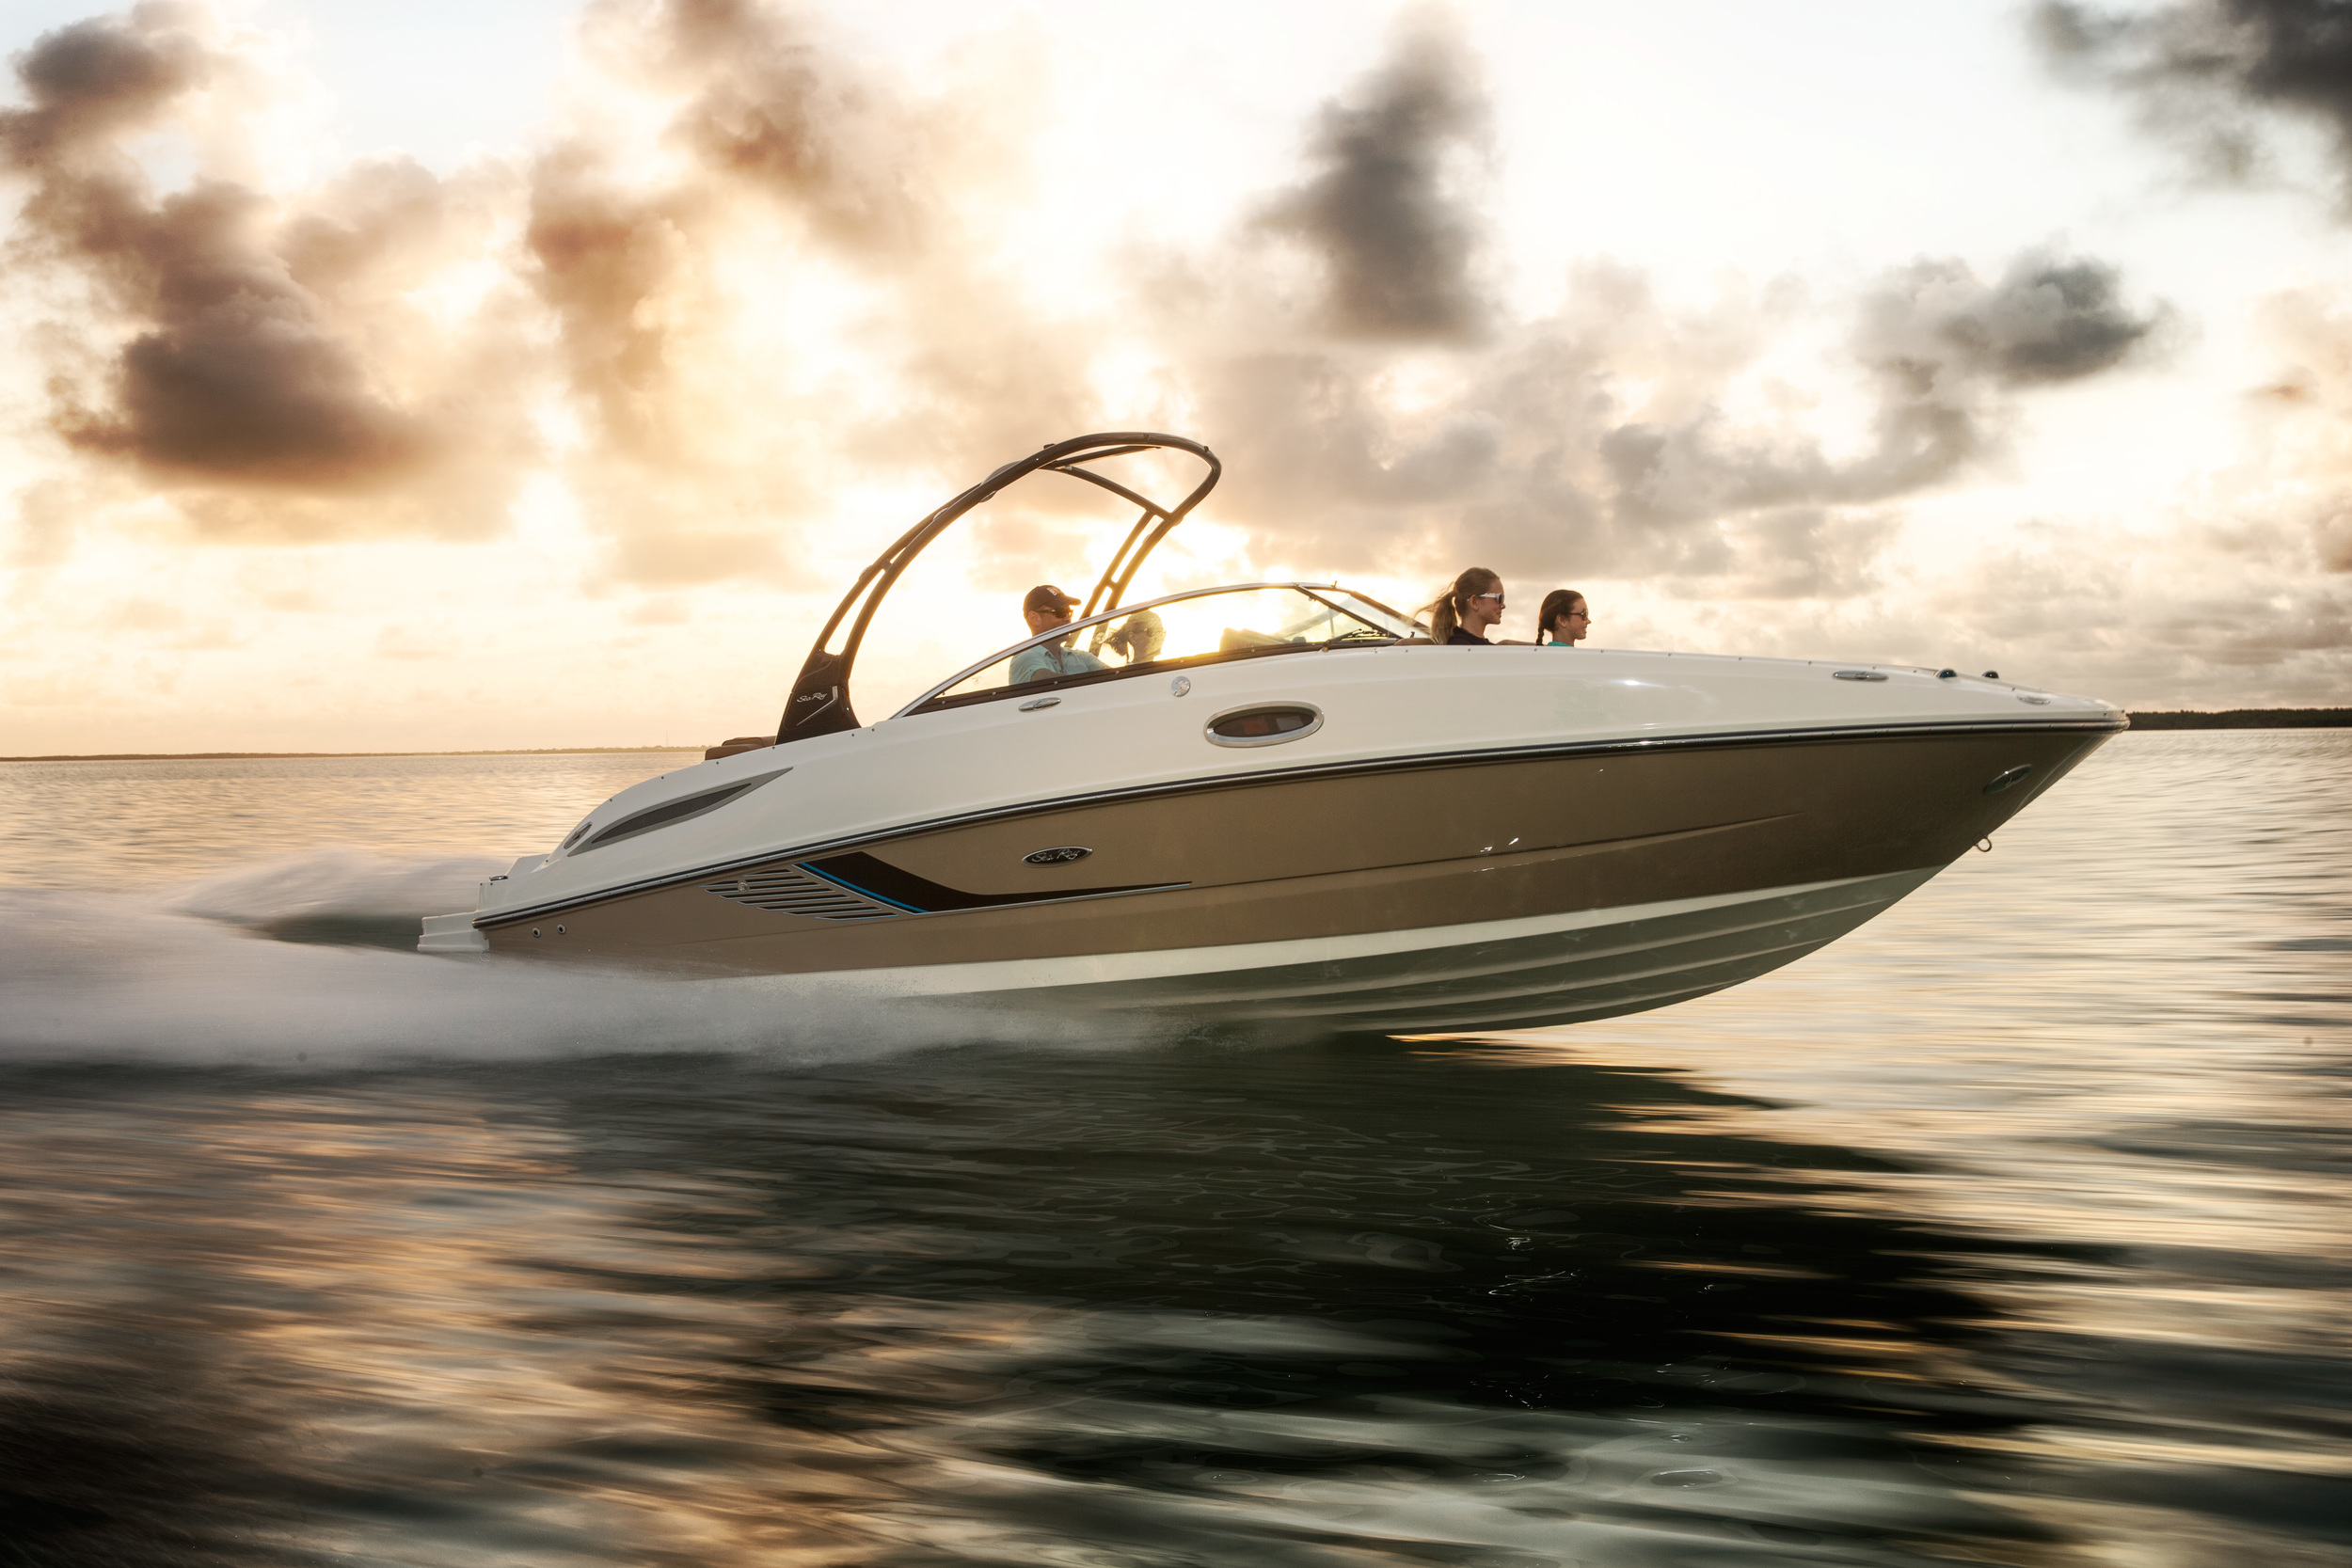 2014 Sea Ray Sundeck 260